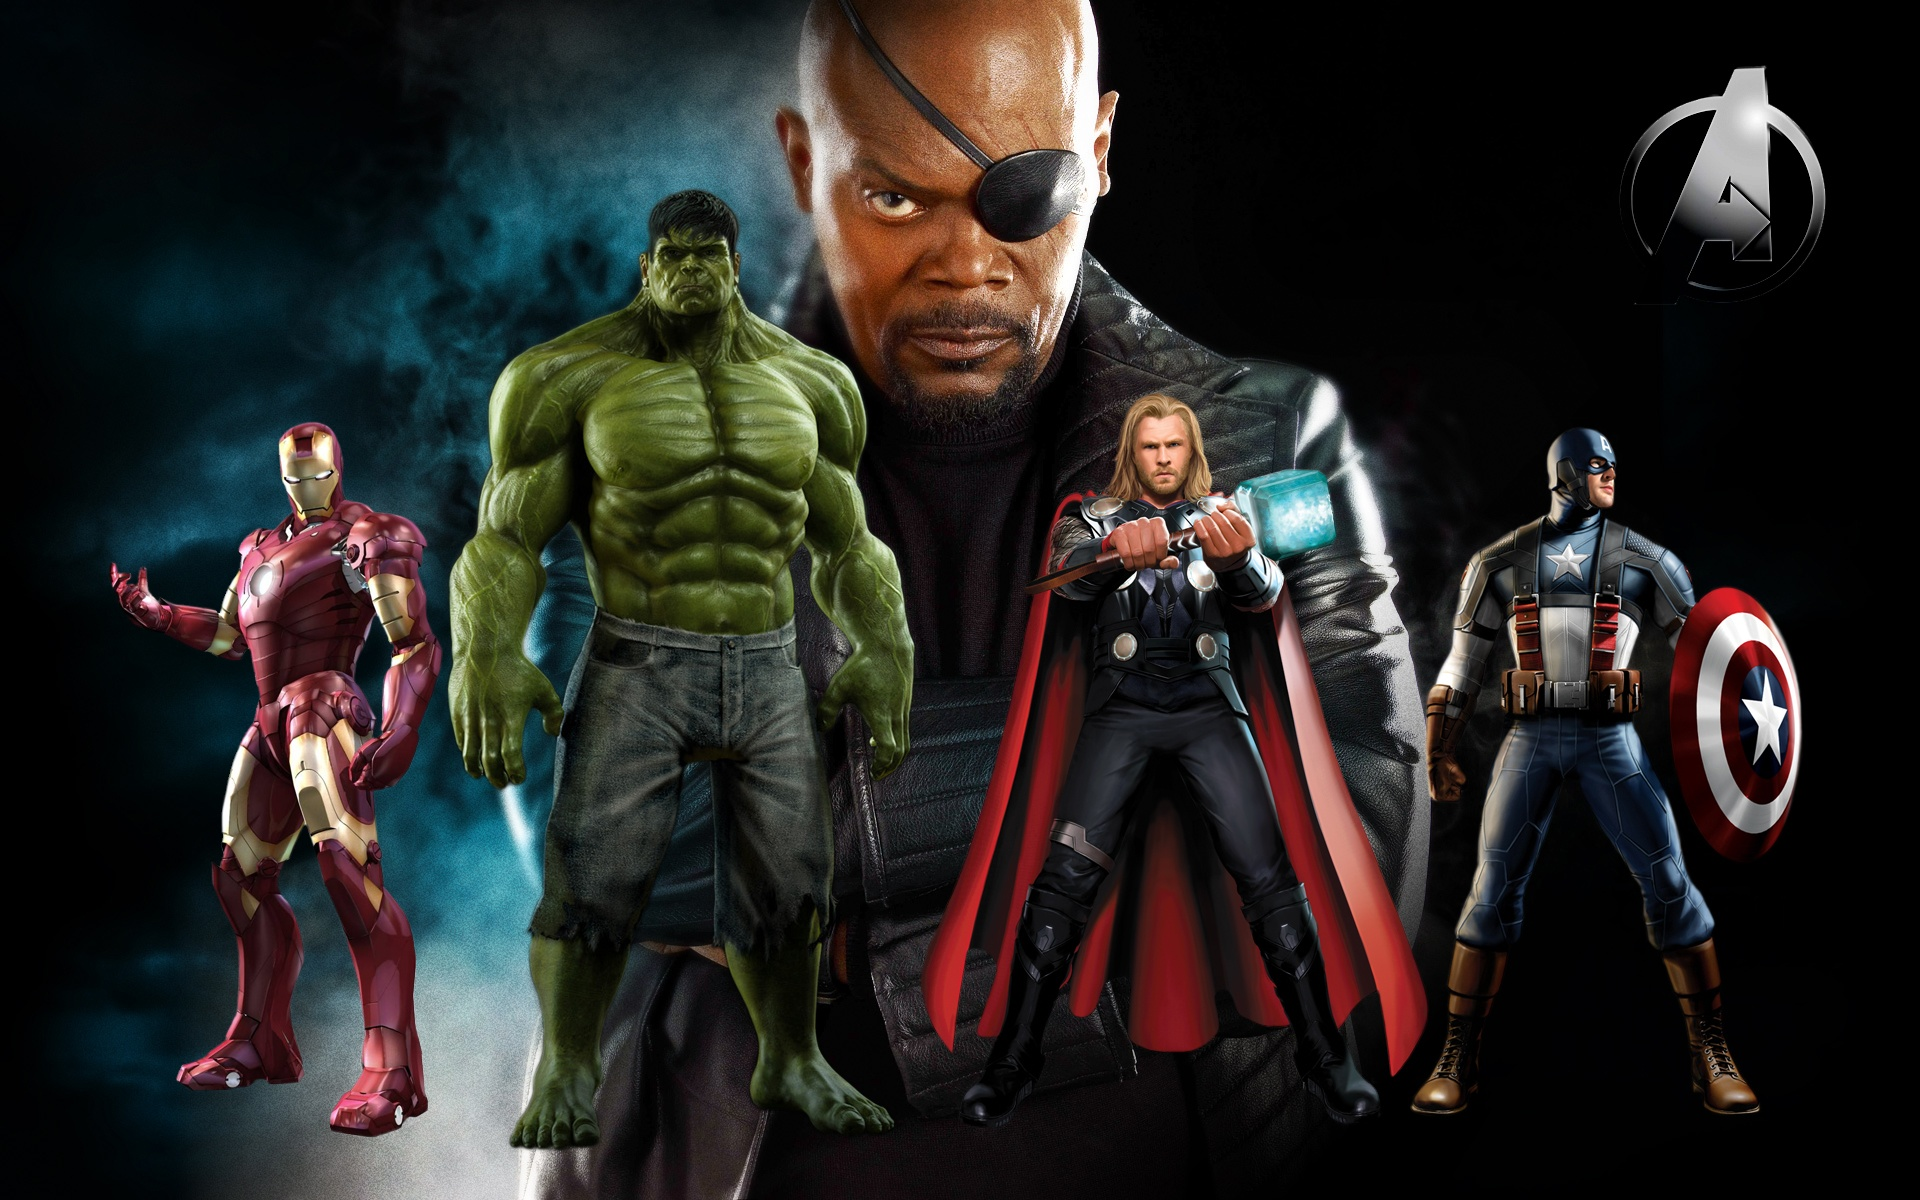 The Avengers Wallpapers   1920x1200   655771 1920x1200